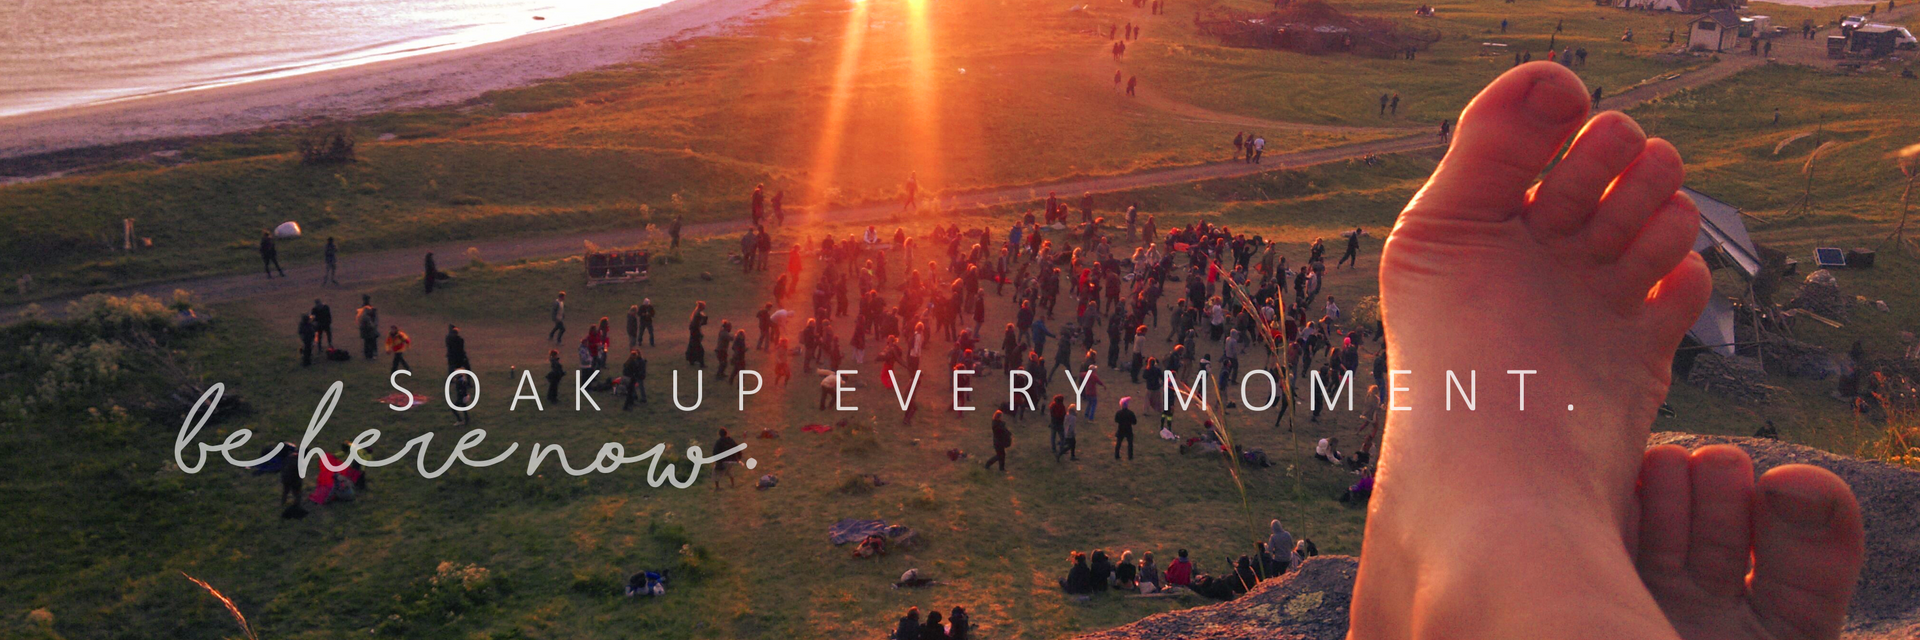 soak up every moment be here now.png